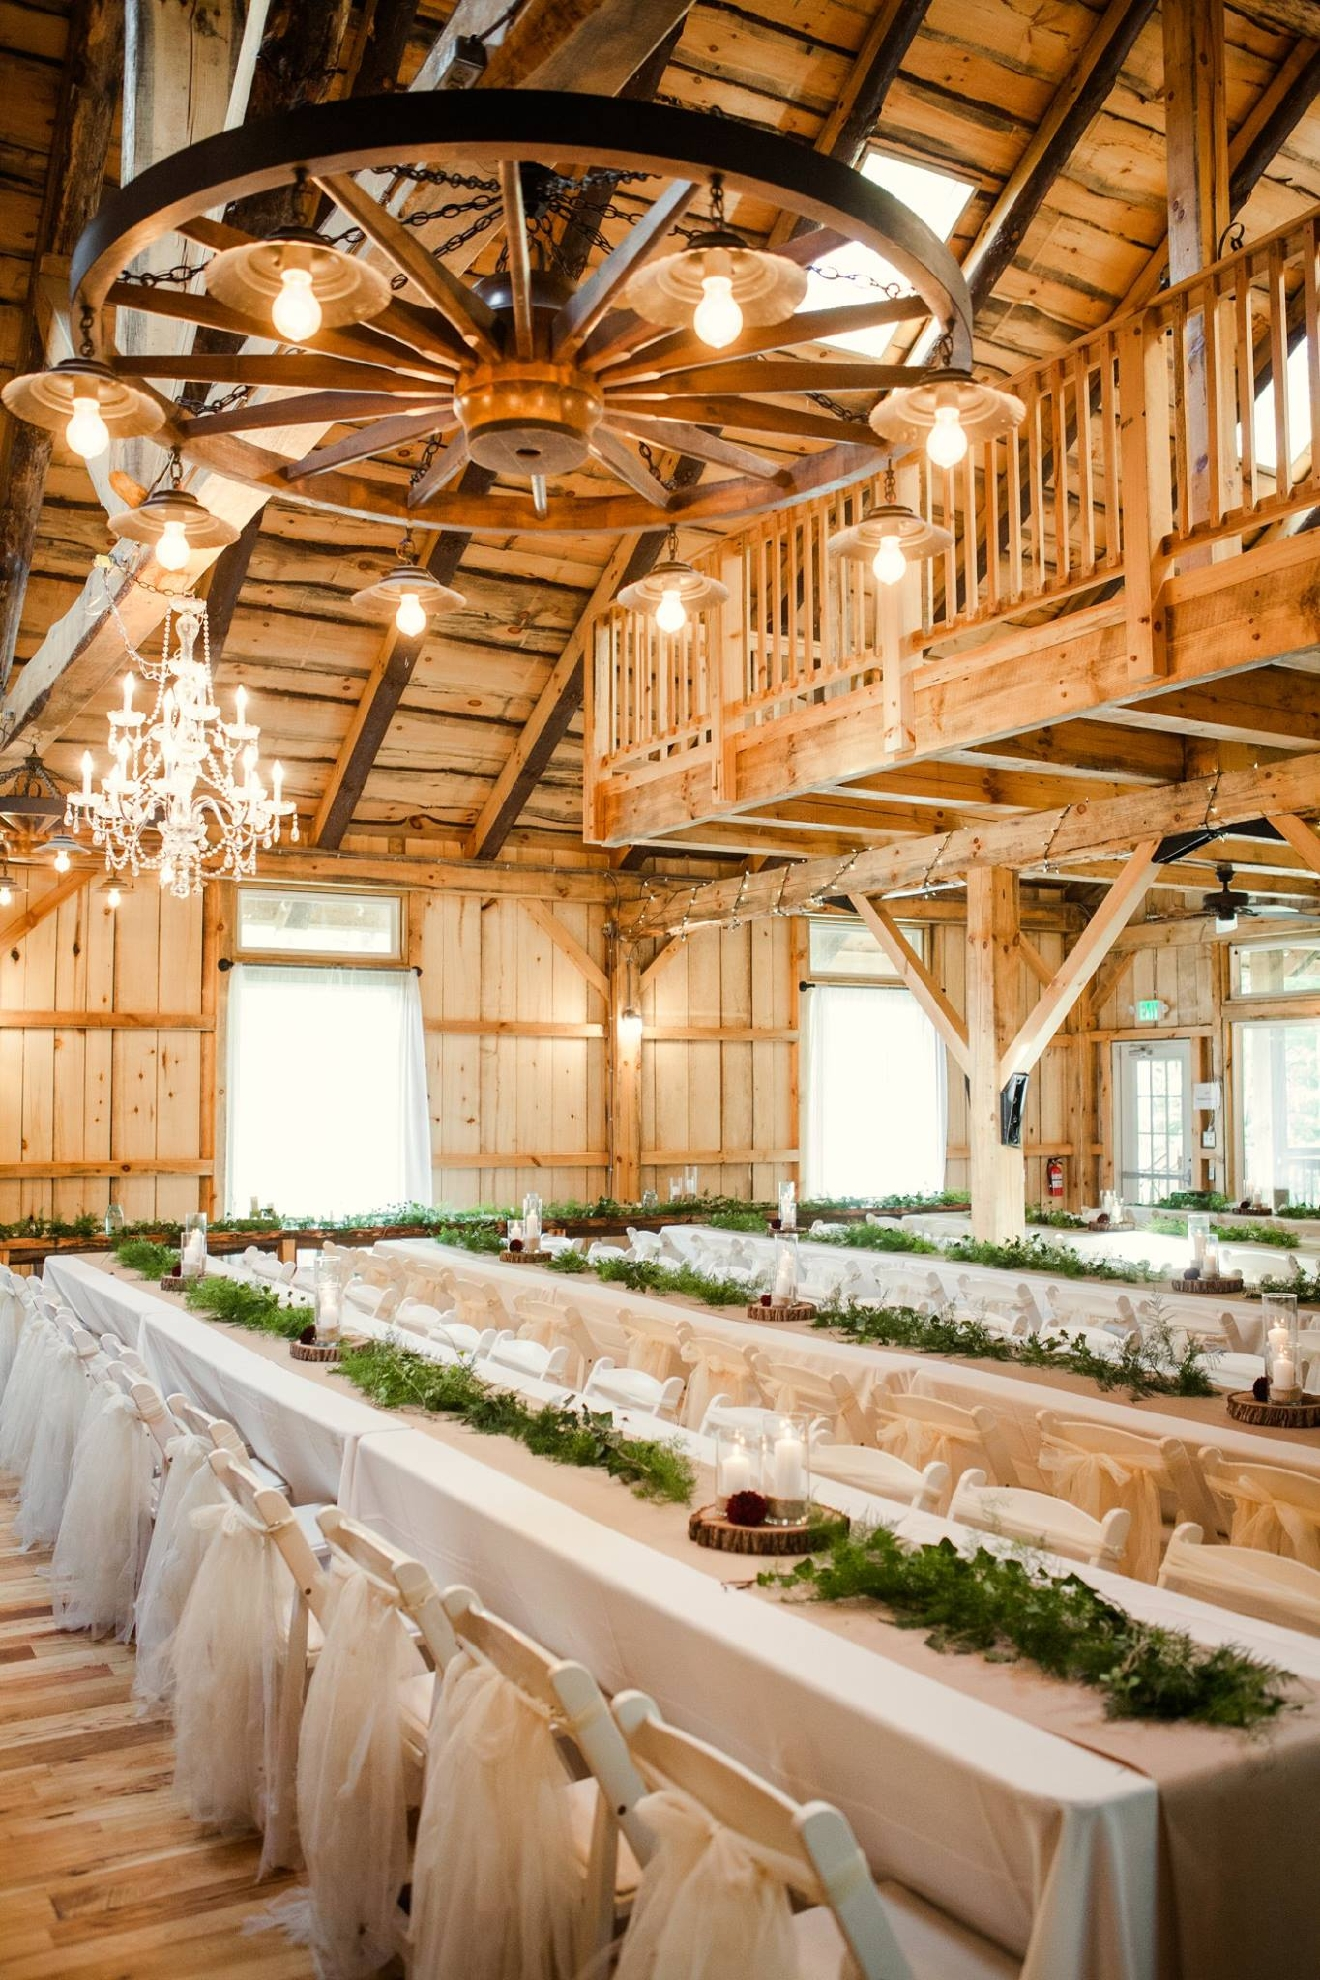 The Mohicans is an event center known for its huge barn, luxury cabins, and world famous treehouses. ADDRESS: 22650 Vess Road, Glenmont, OH 44628 / Image courtesy of The Mohicans // Published: 12.27.16